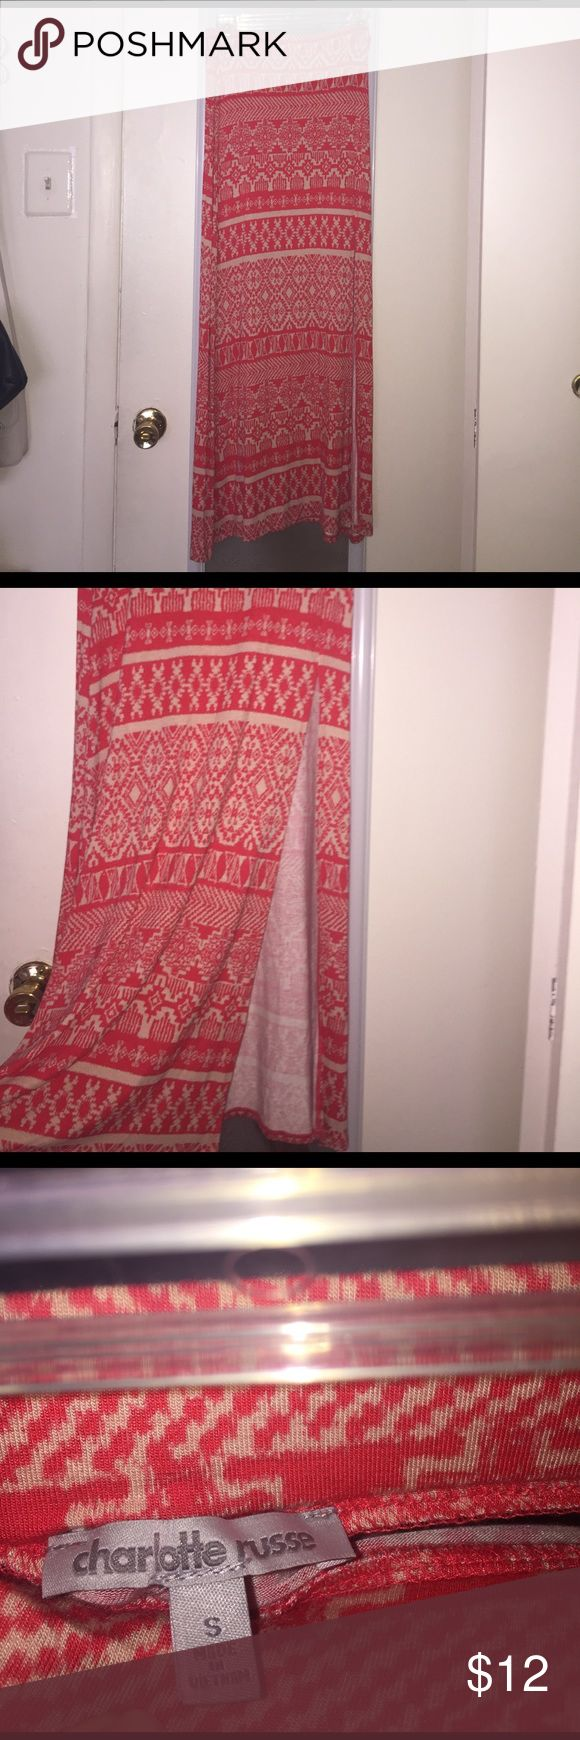 Tribal Maxi Skirt Long, coral tribal maxi skirt from Charlotte Russe! It has a super cute slit on the left side. Very soft, light and flowy material (-: brand new condition, I haven't worn it once. Charlotte Russe Skirts Maxi